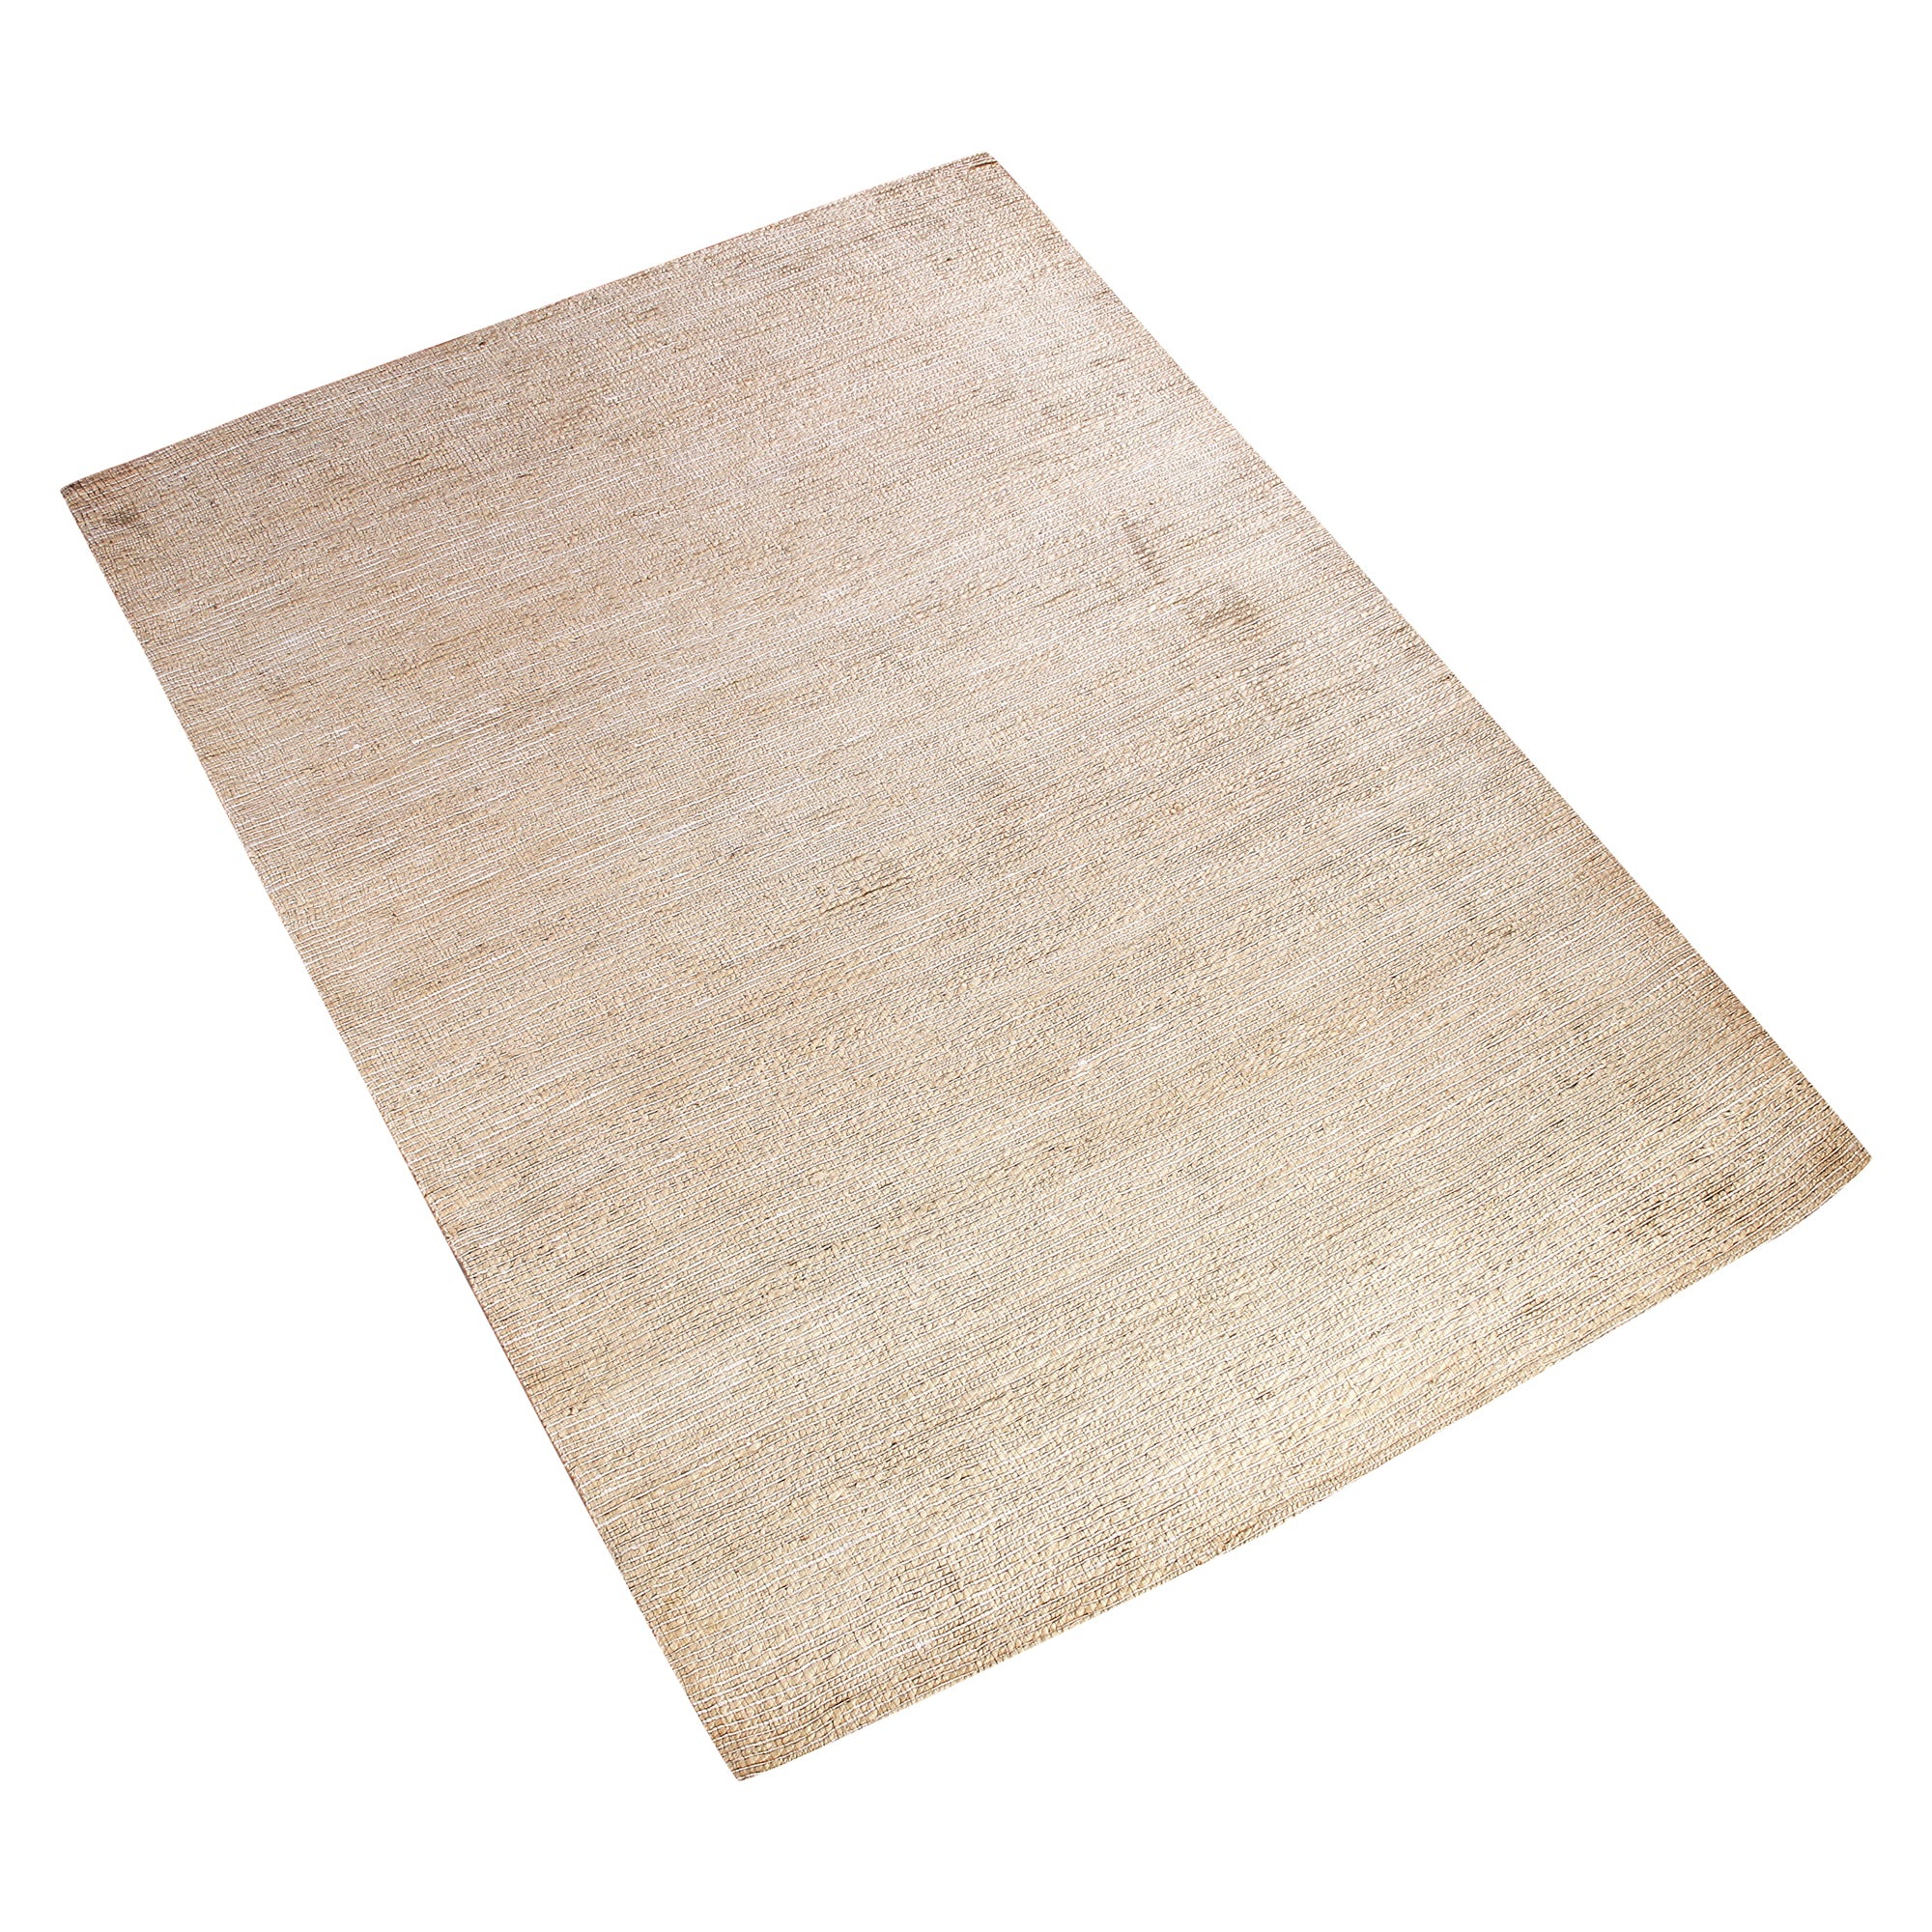 BEIGE NEUTRAL PLAIN JUTE LOOK HAND TUFTED RUG